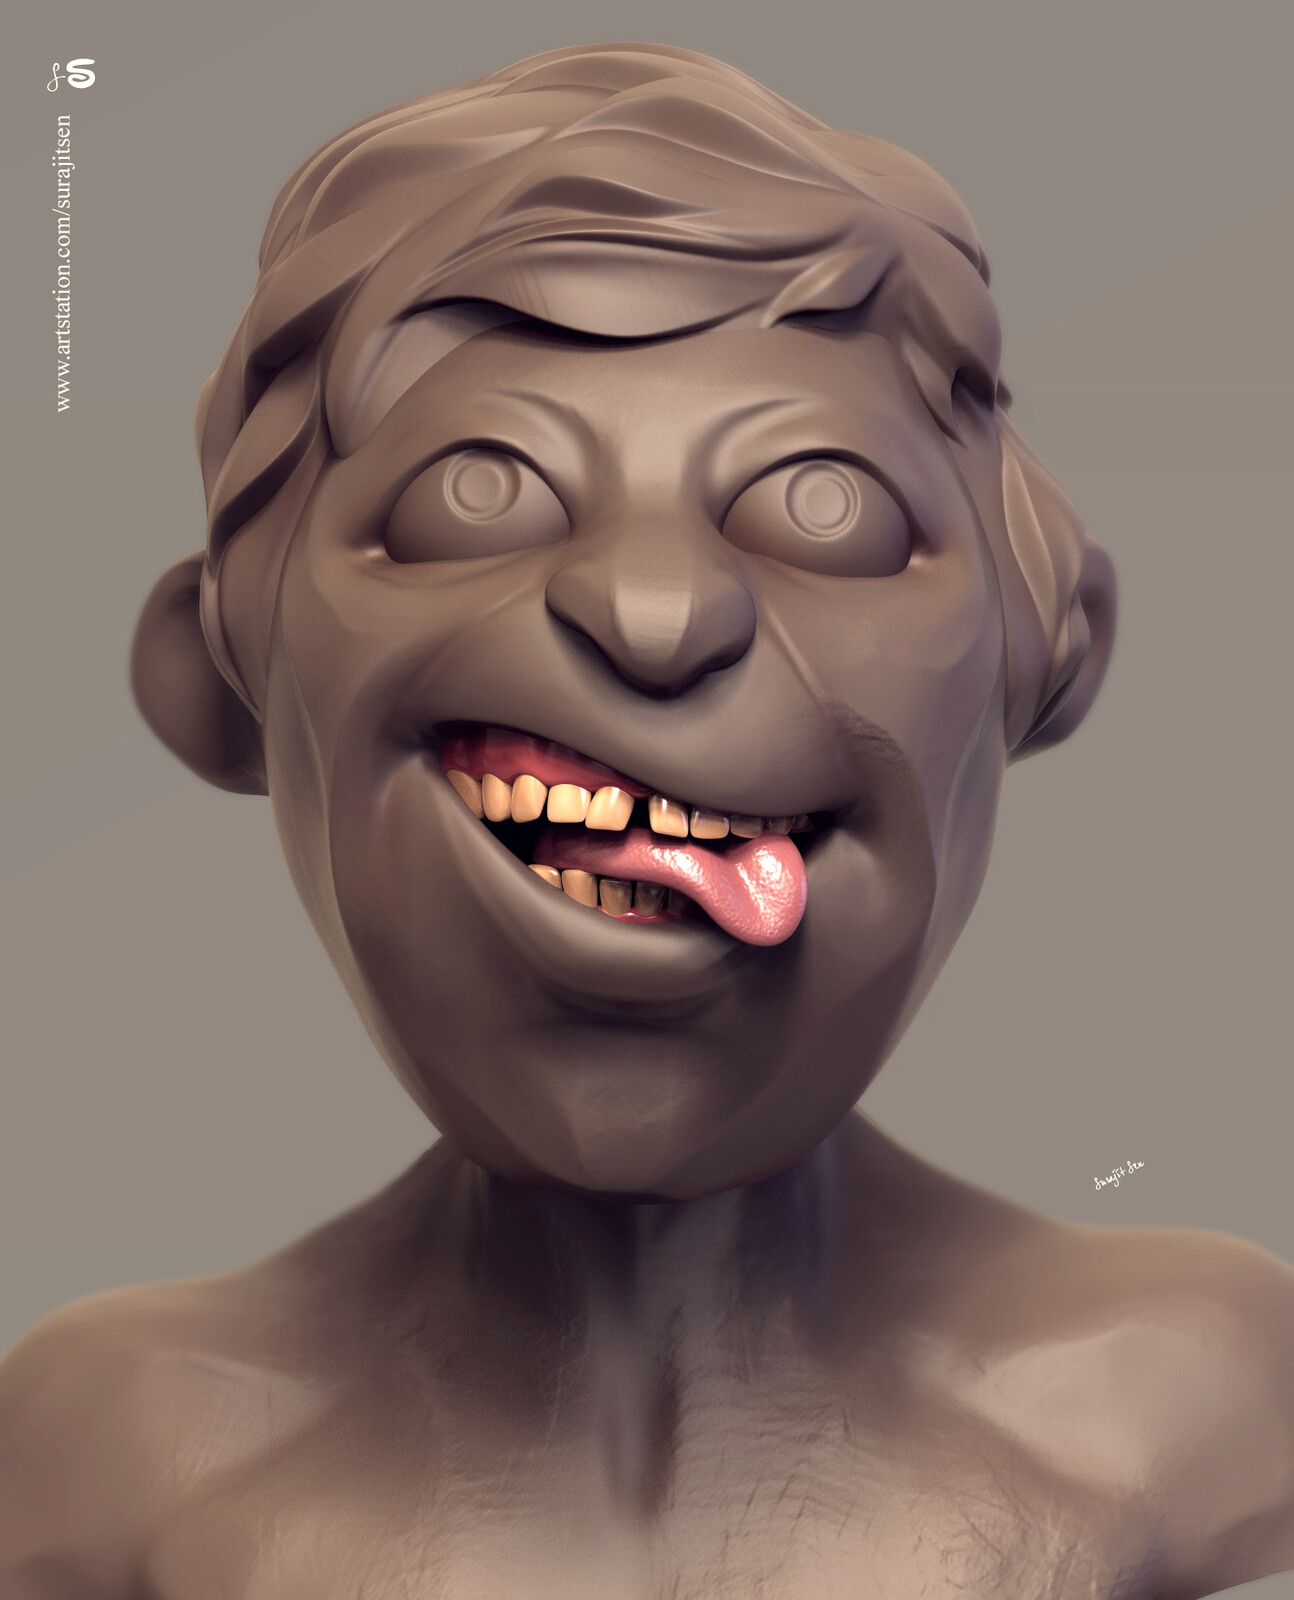 Fun with brushes... Bulty.  My free time quick Digital Sculpting study... Concept taken from my old rough sketch book.